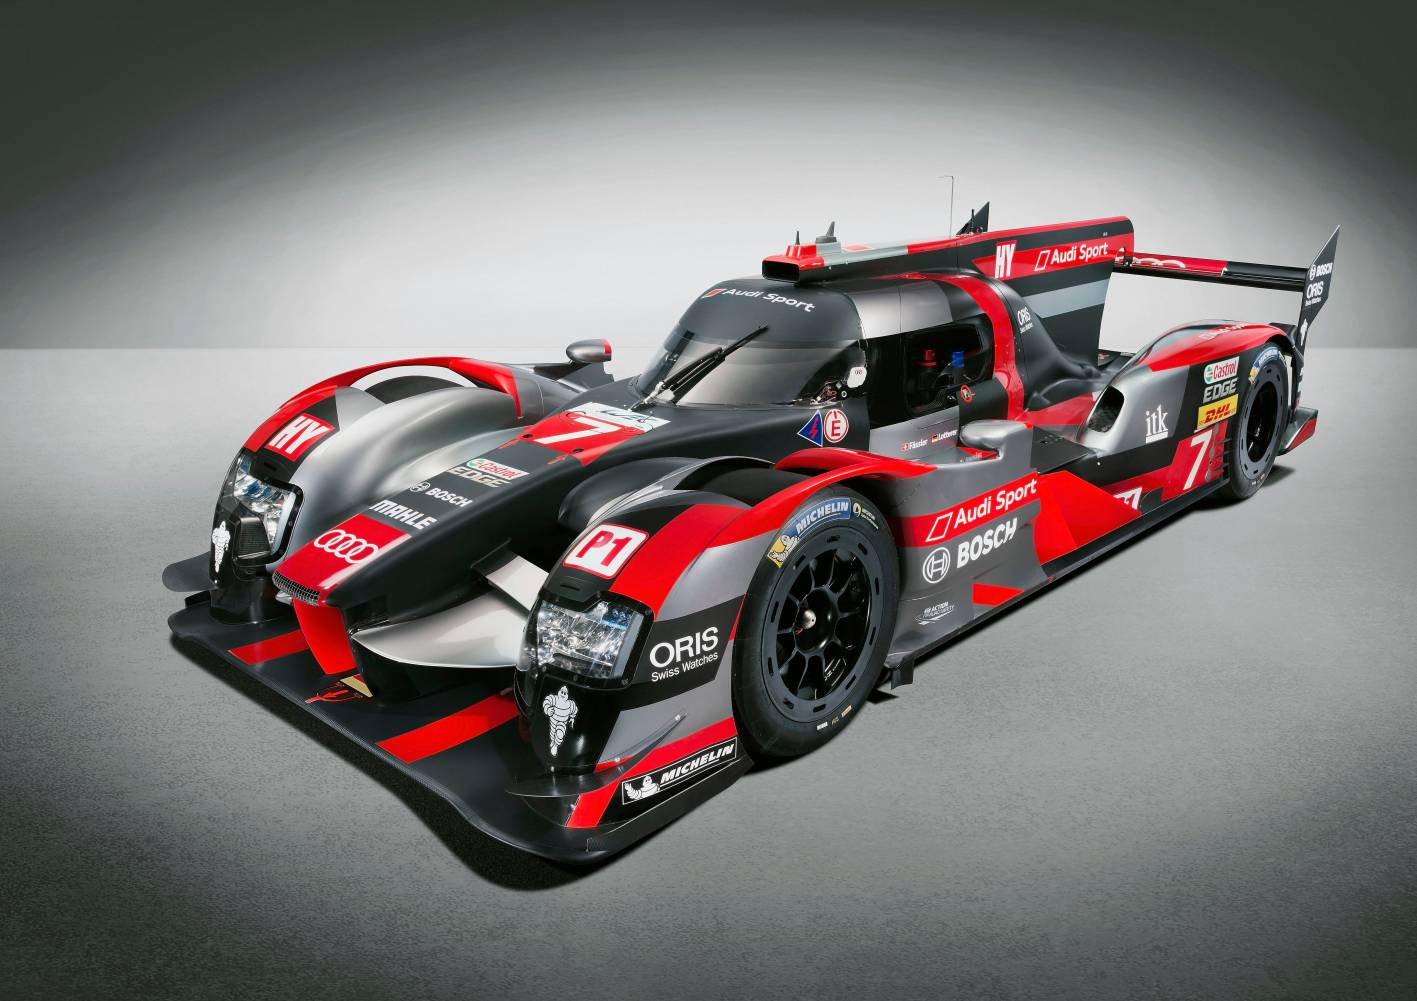 Audi Cars  News Audis Latest R18 LMP1 Car is the fastest yet